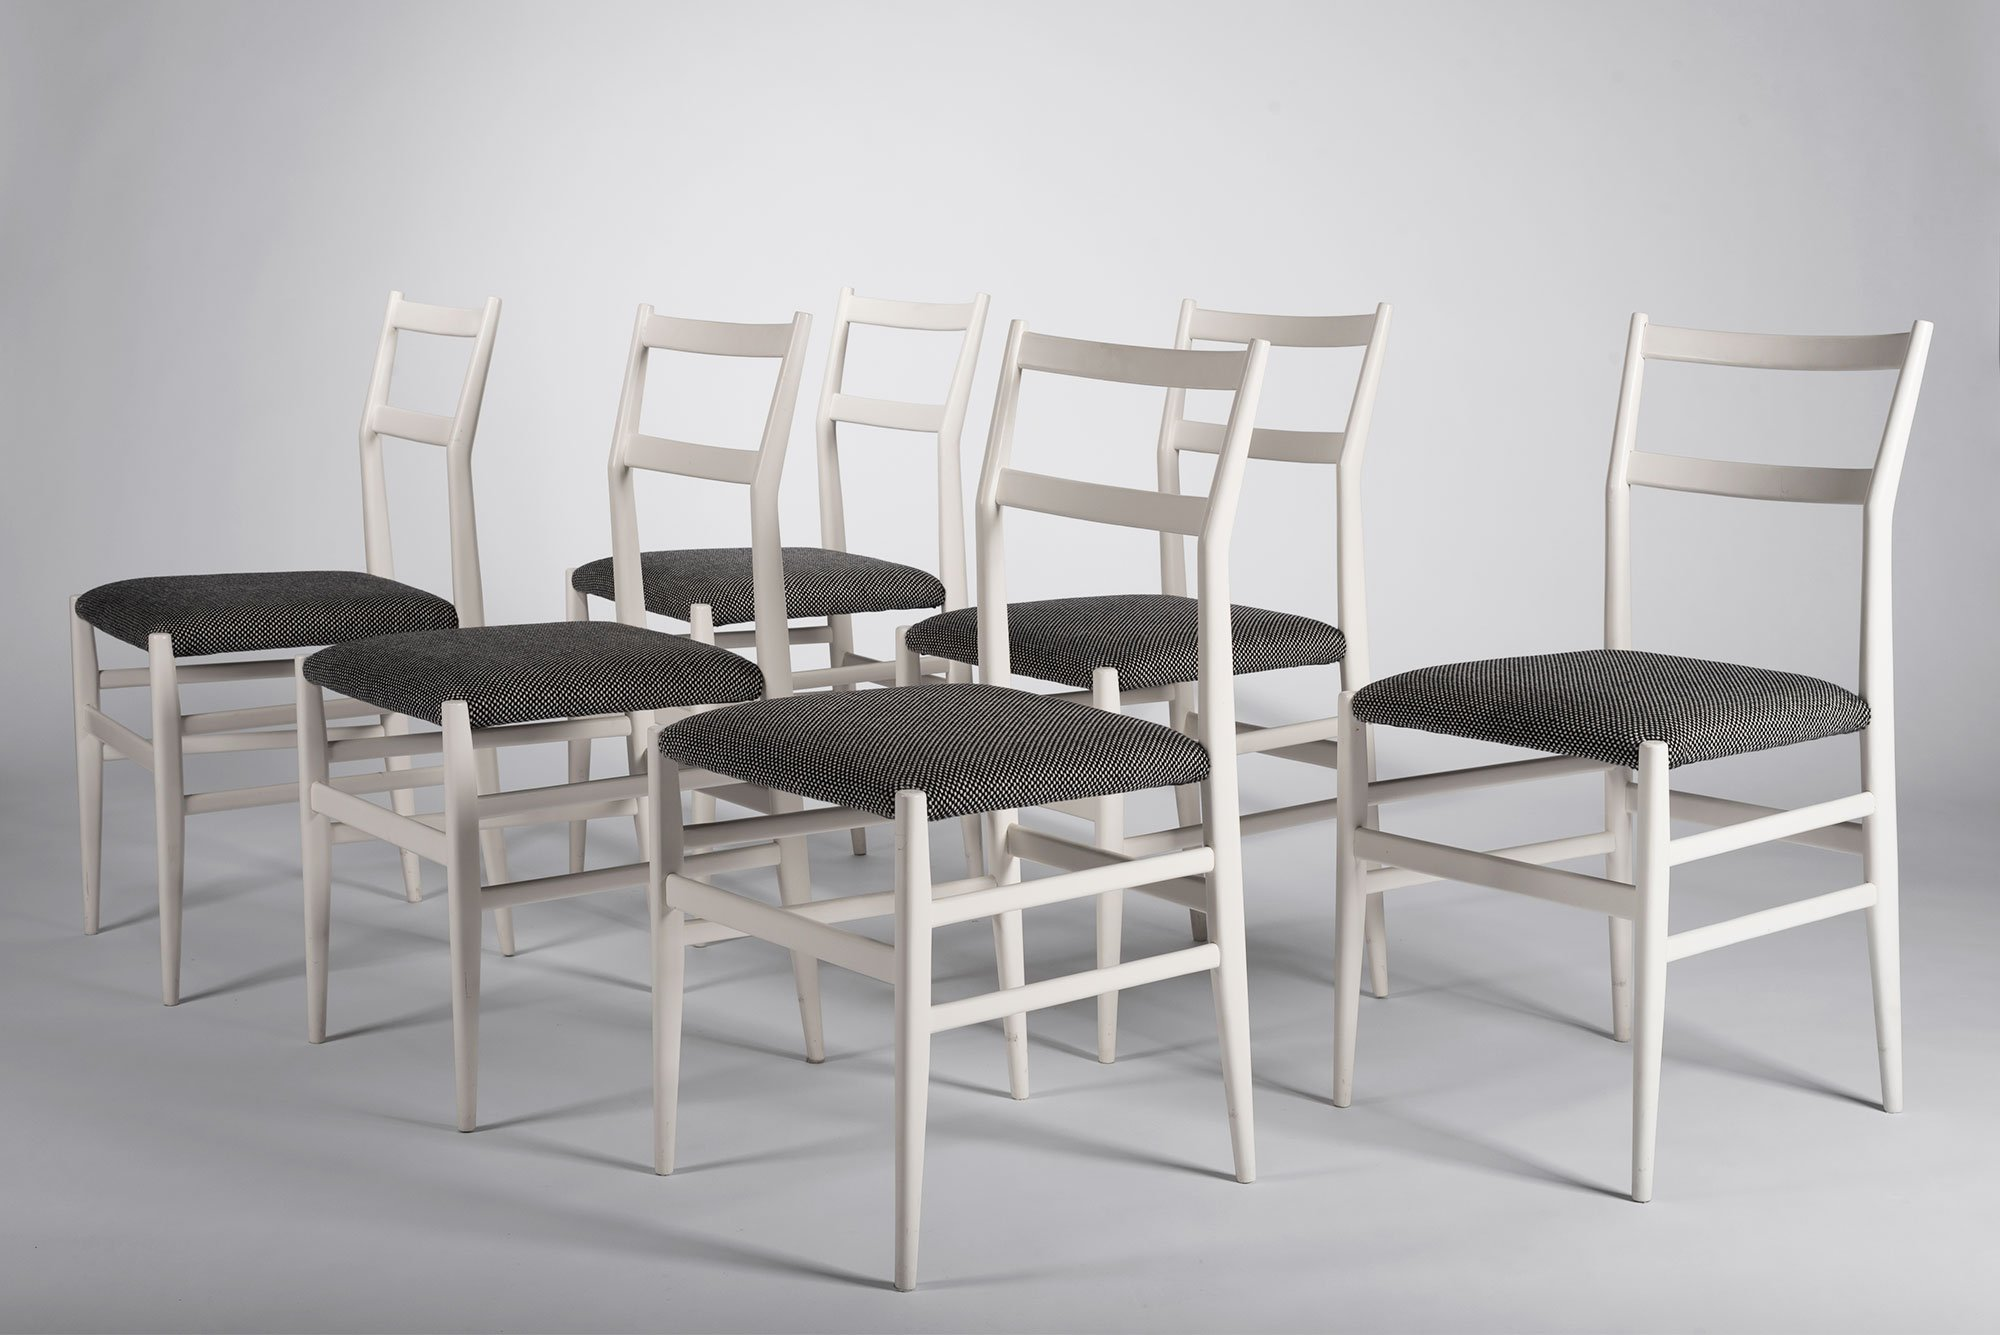 Leggera dining chairs model 646/2 by Gio Ponti. This chair is a predecessor to the Superleggera.